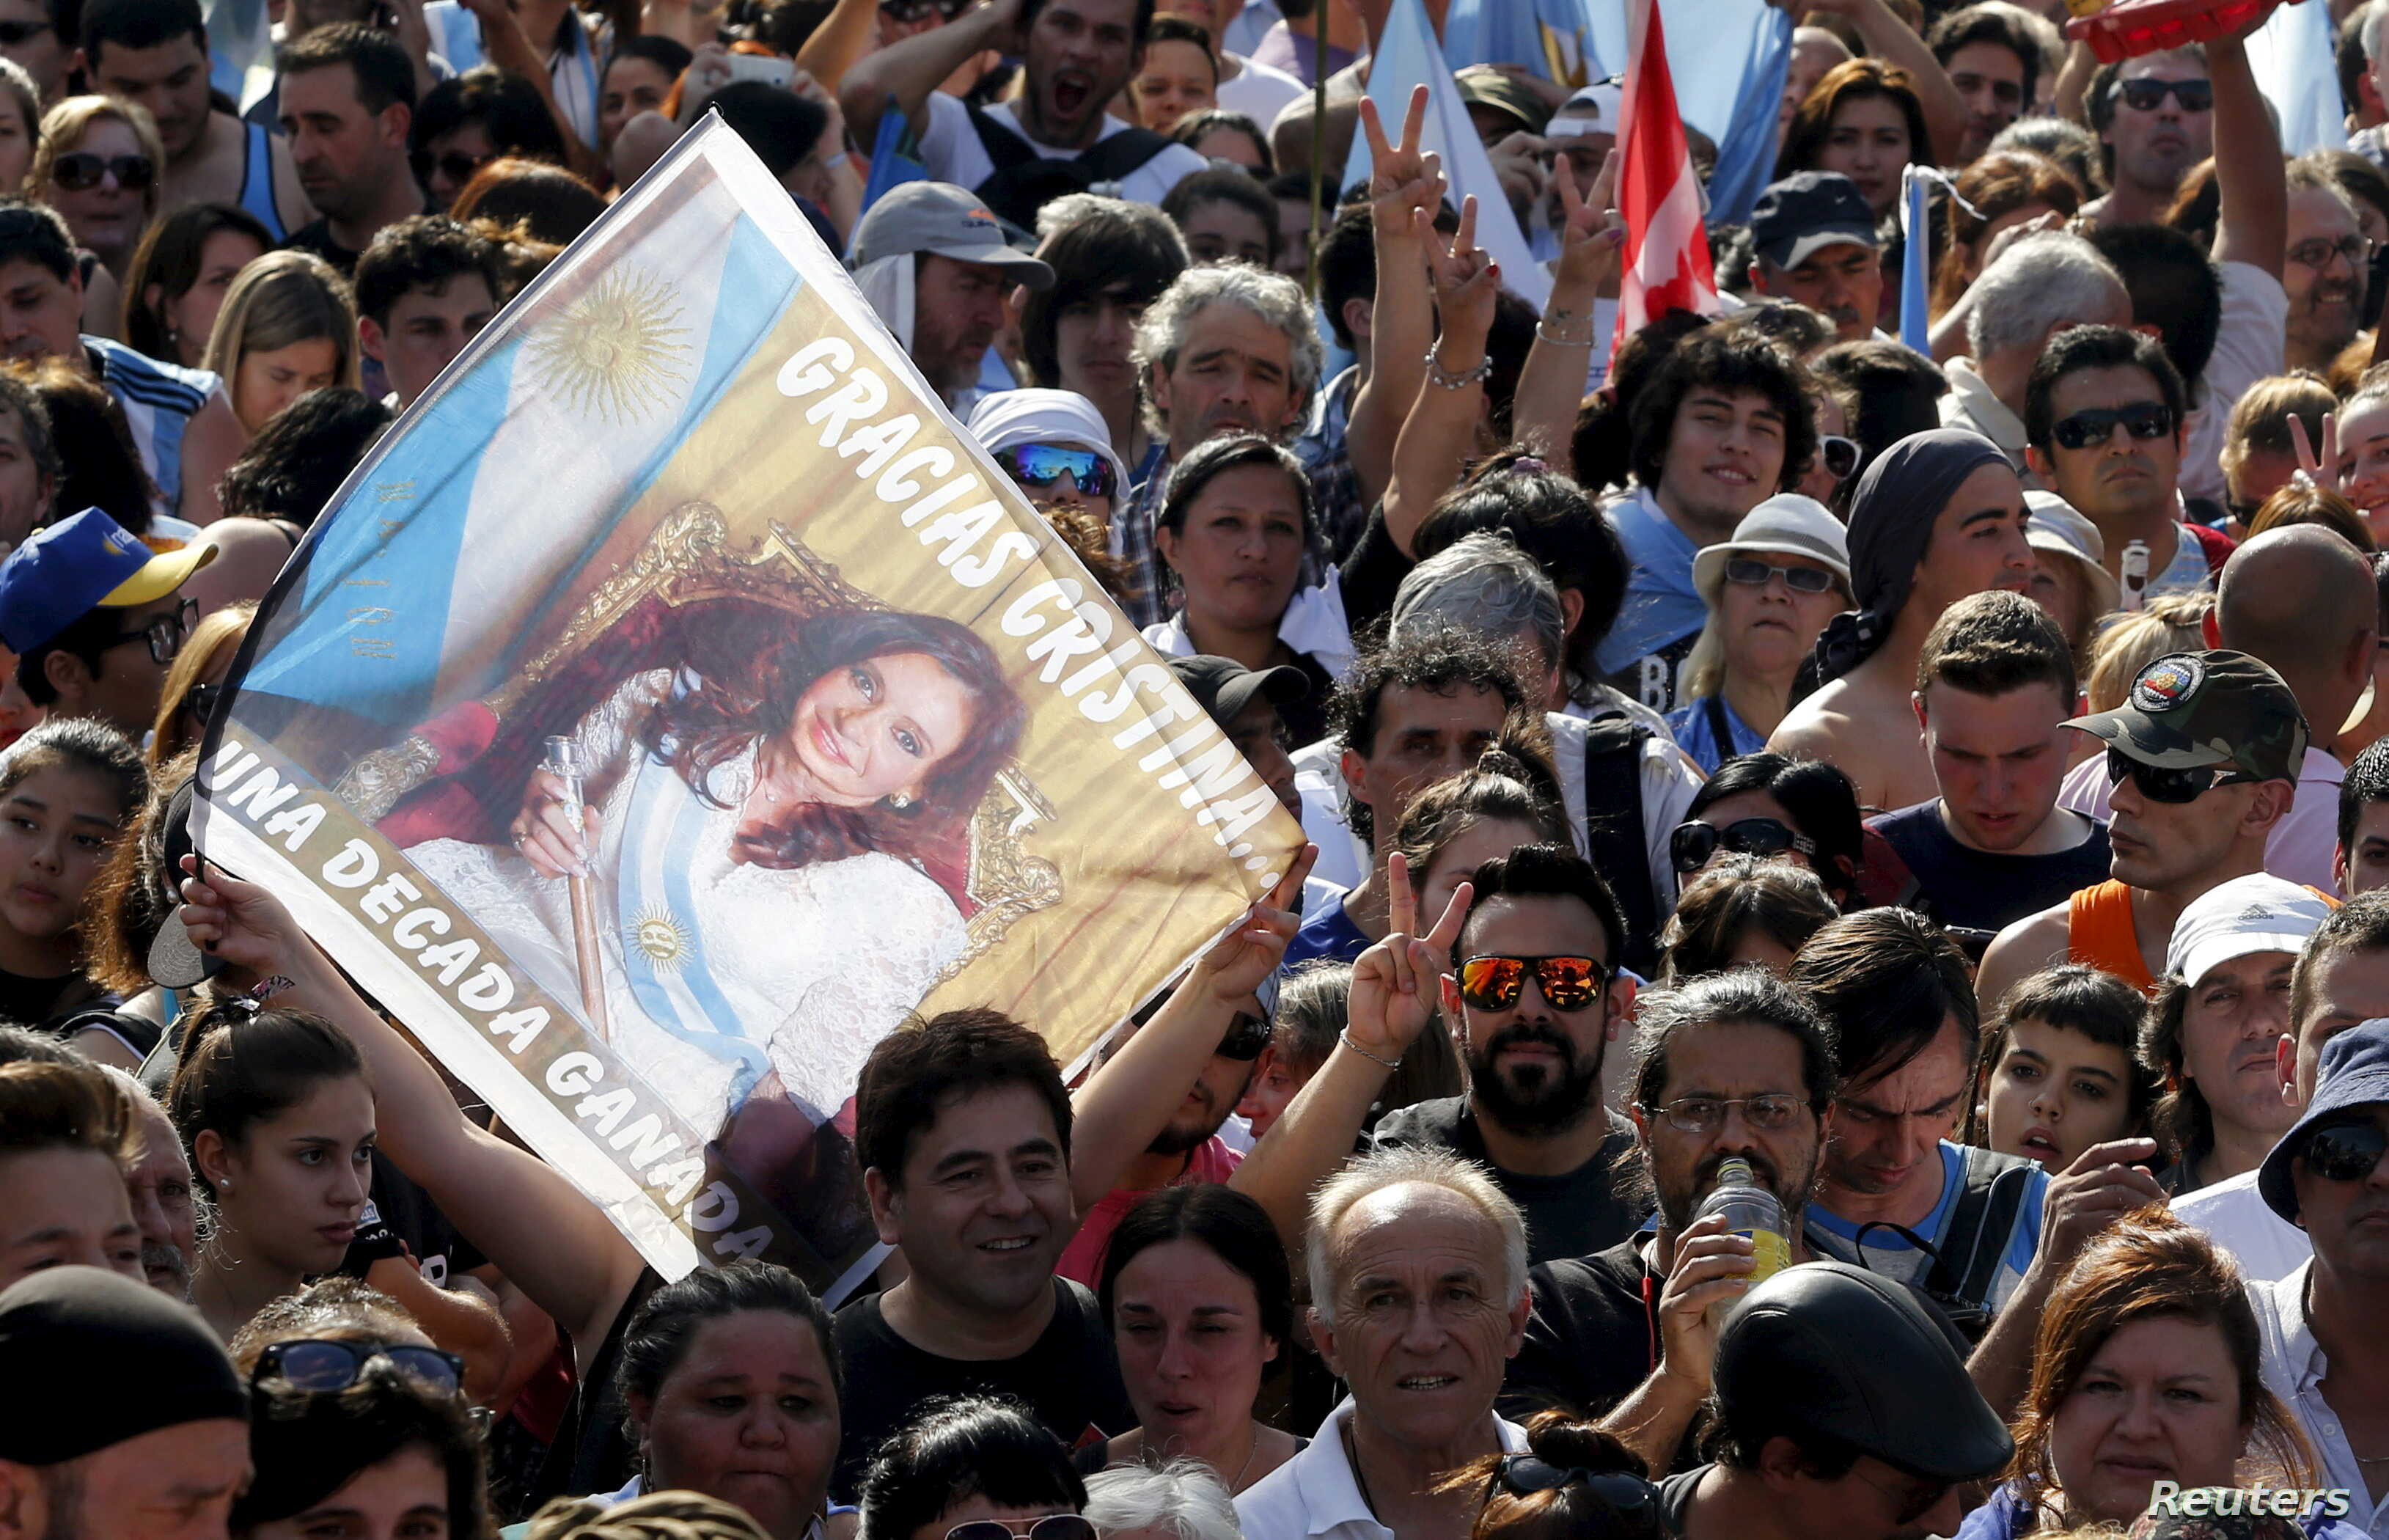 "People wait for the speech of Argentina's President Cristina Fernandez de Kirchner while carrying a banner that reads ""Gracias Cristina"" during a rally in front of the Casa Rosada Presidential Palace in Buenos Aires, Argentina, Dec. 9, 2015."